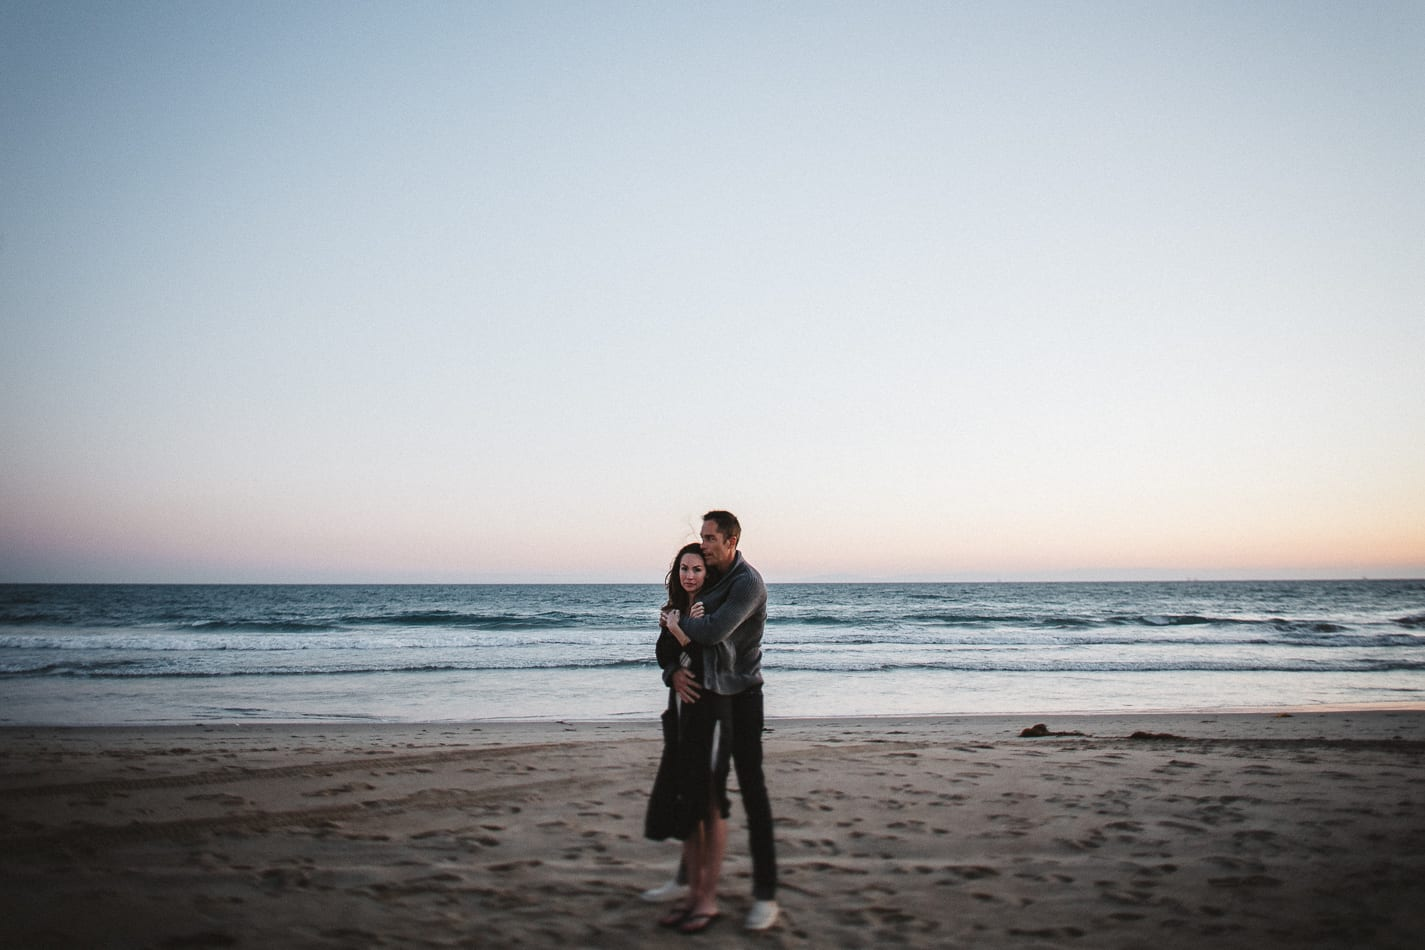 jason-alyssa-huntington-beach-california-engagement-photographer-35